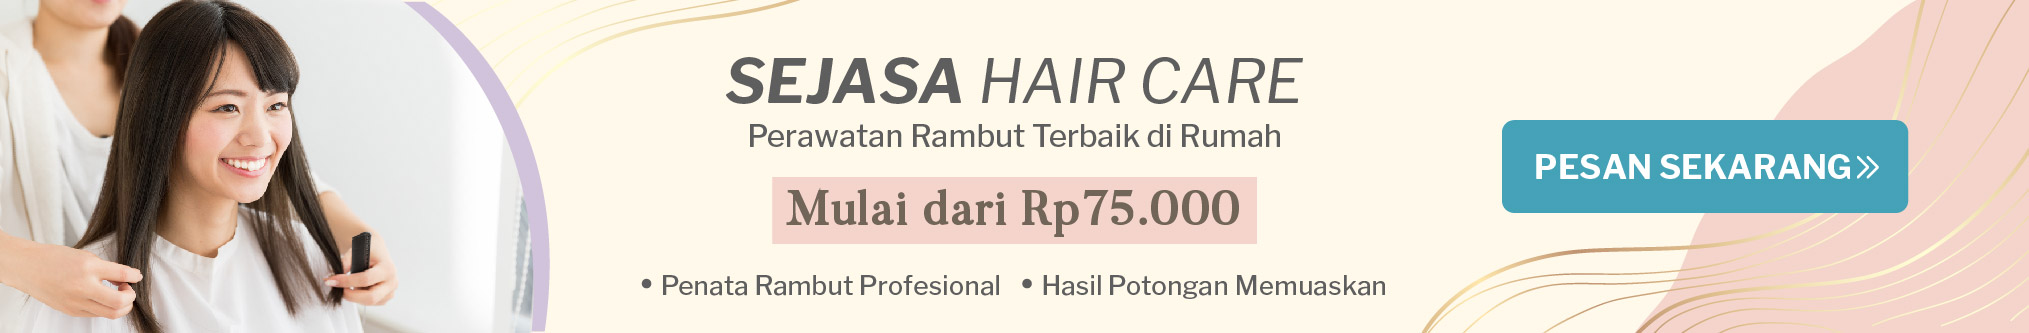 Homepage banner hair care